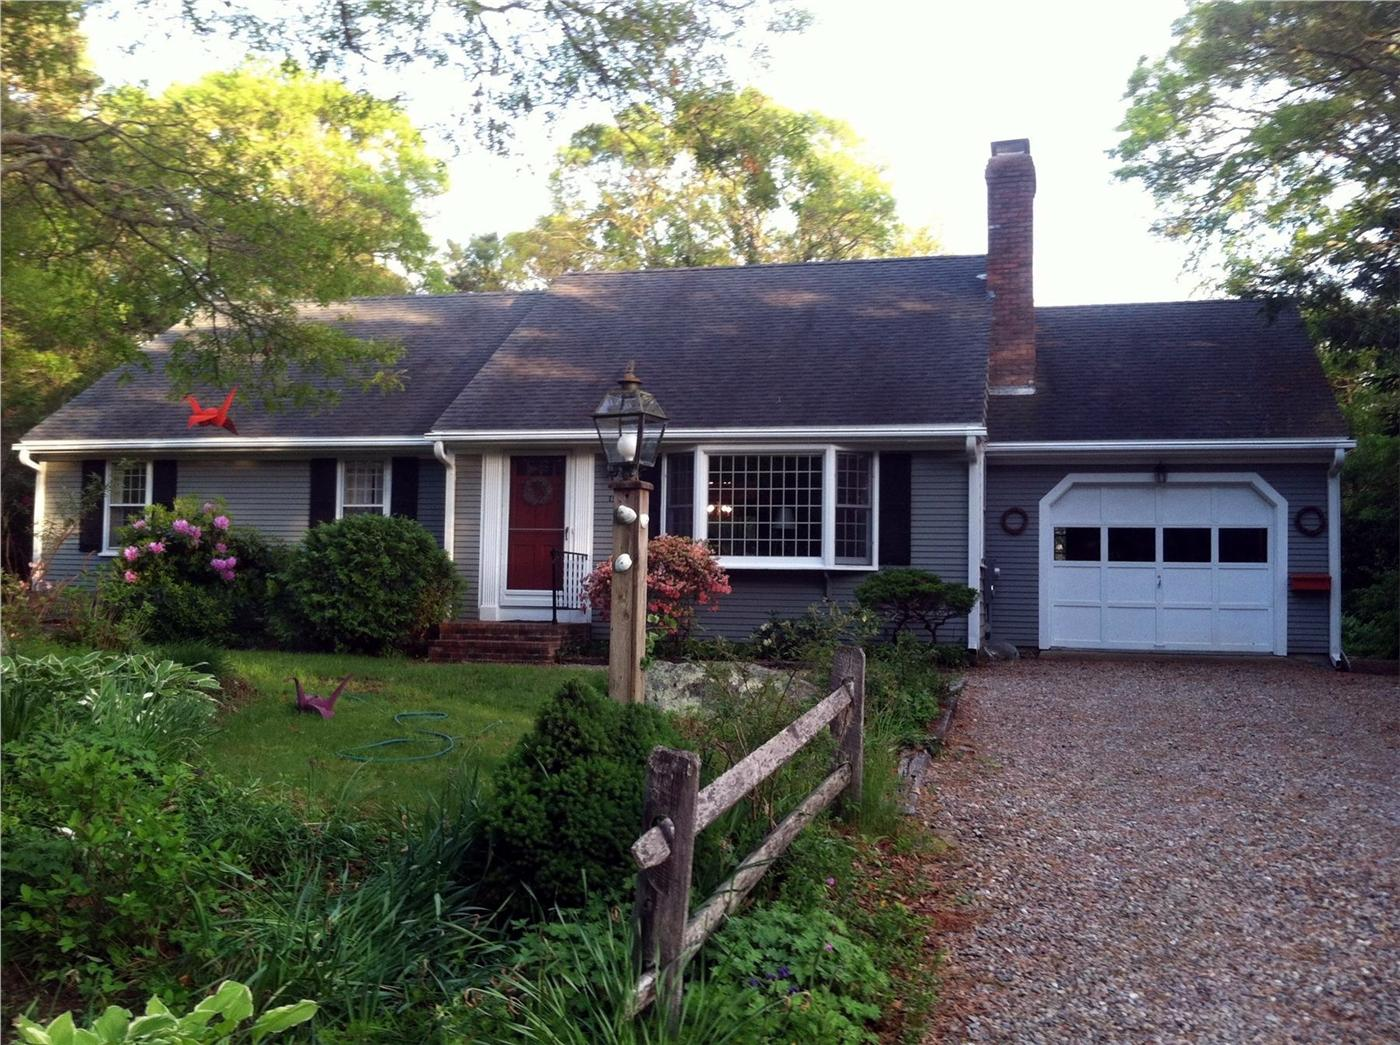 Brewster Vacation Rental Home In Cape Cod Ma 02631 Id 23051